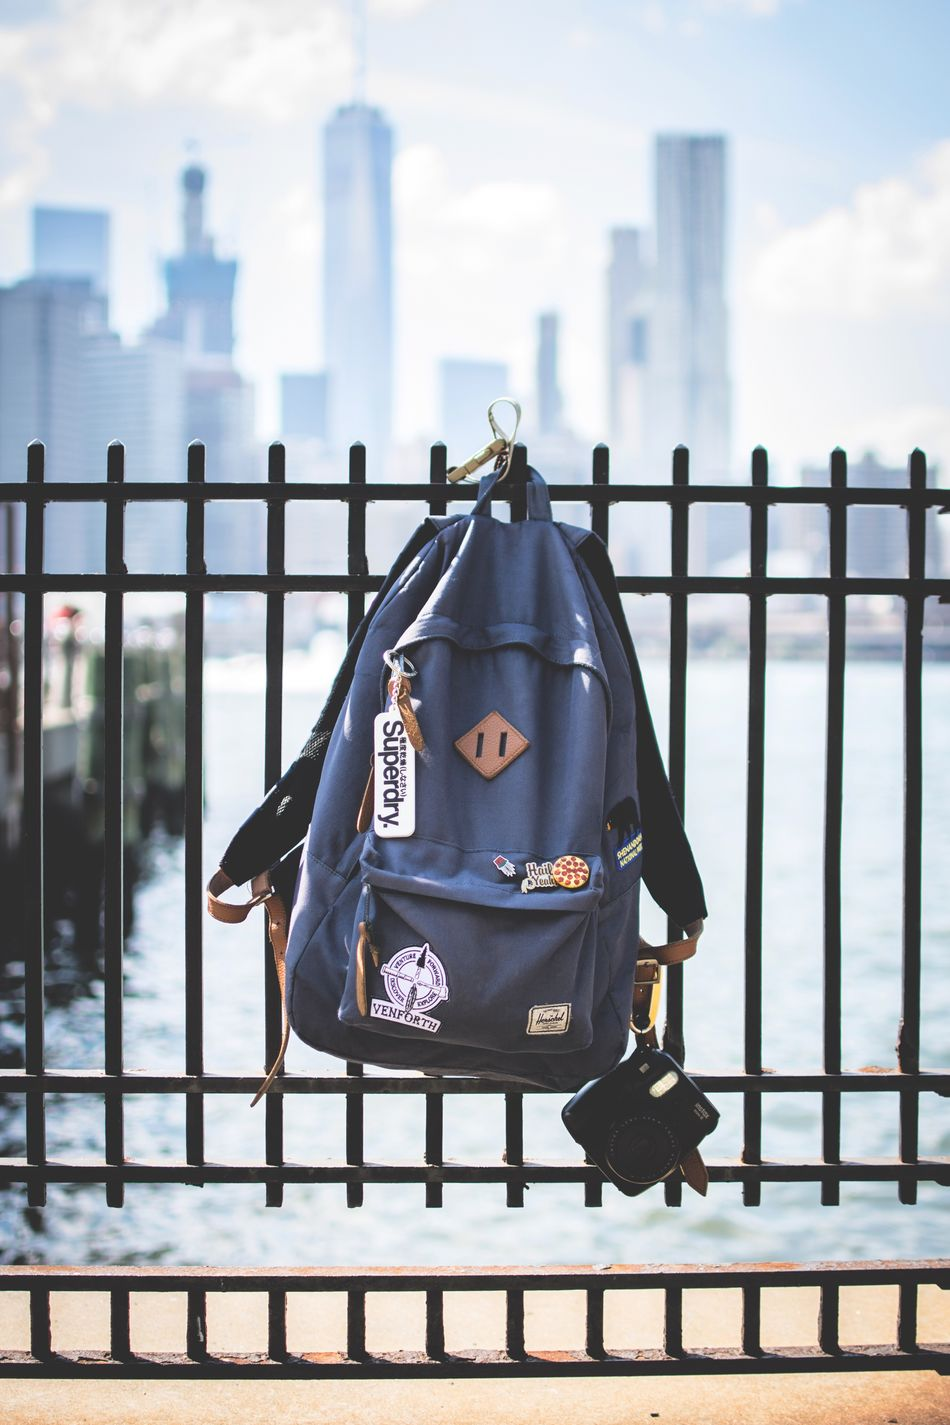 The adventure back is going places. Dveraphoto Gettyimages New York City NYC Photography Herschel Venforth